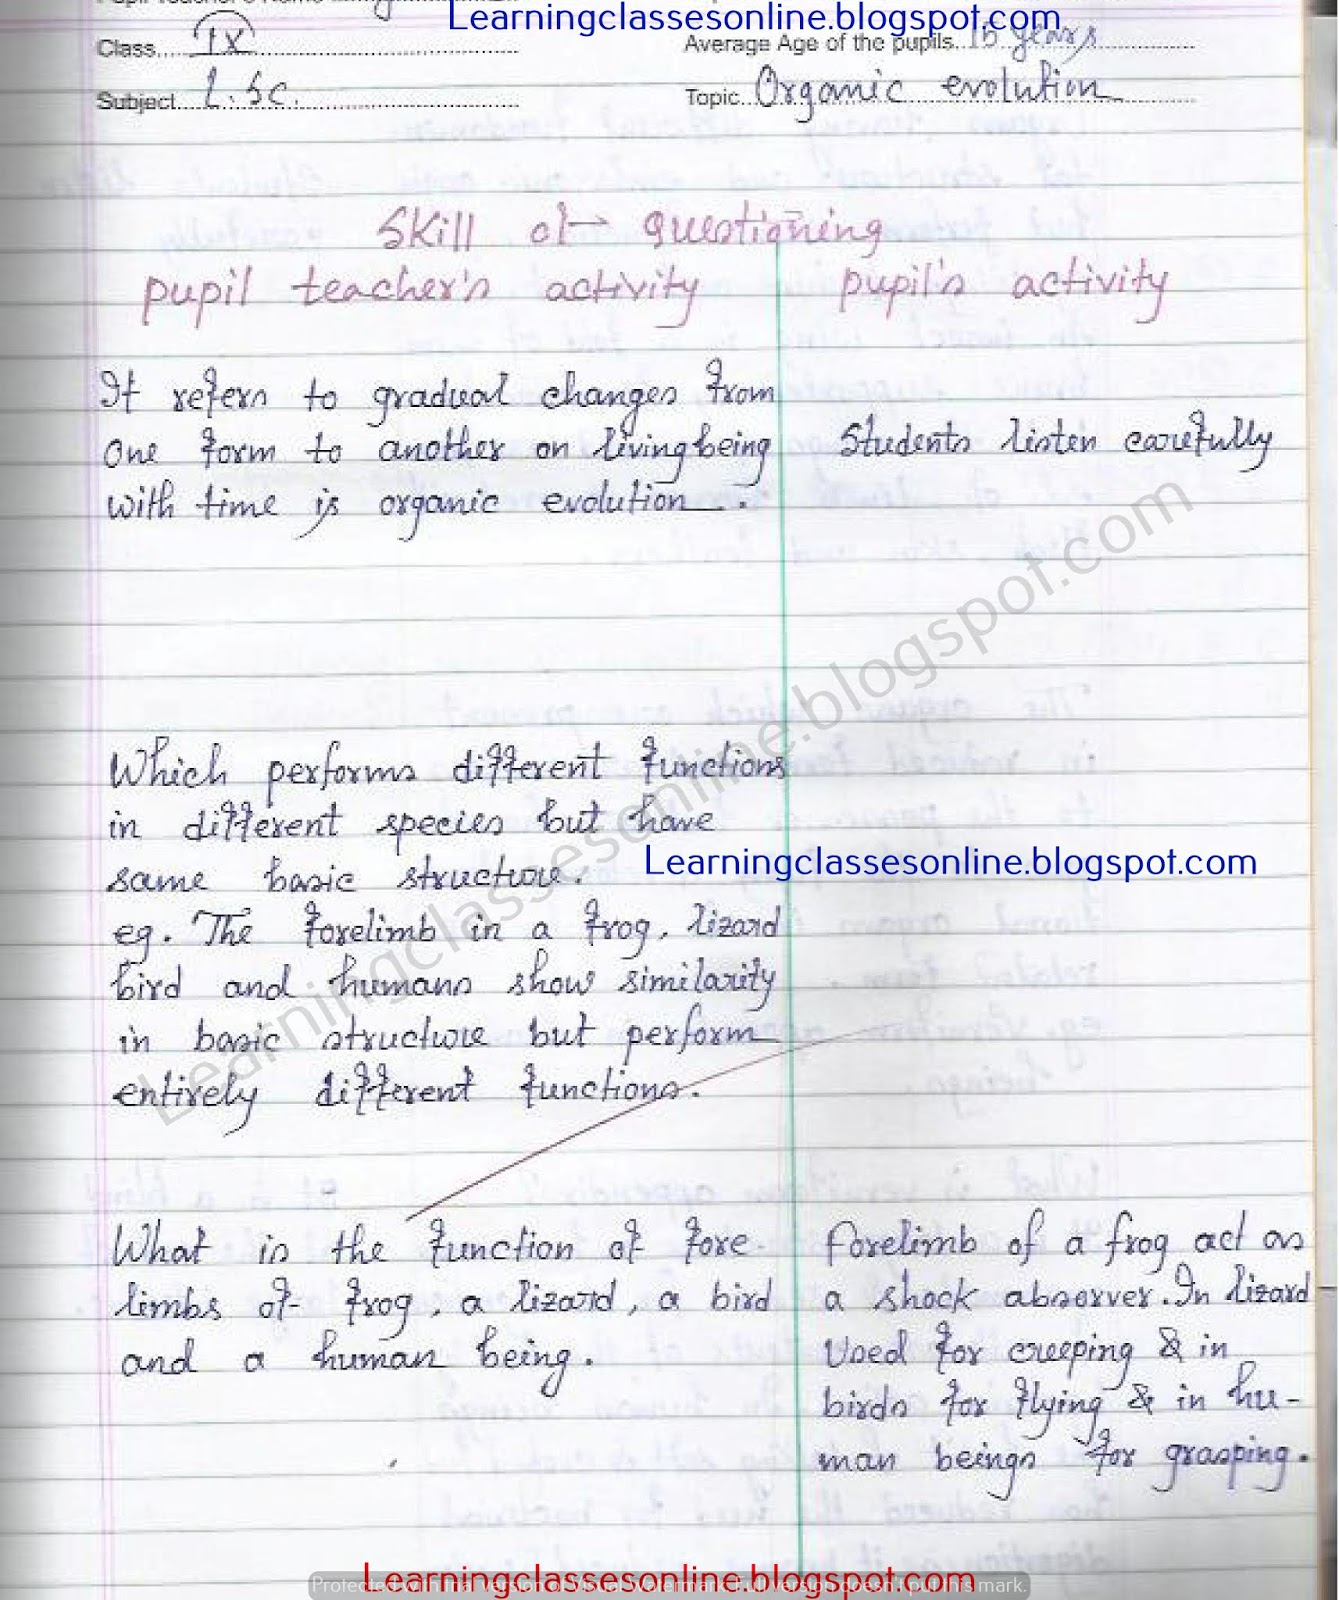 life science or biological science B.Ed lesson plan for year 1 and 2 teching on organic evolution and the skill used is questioning